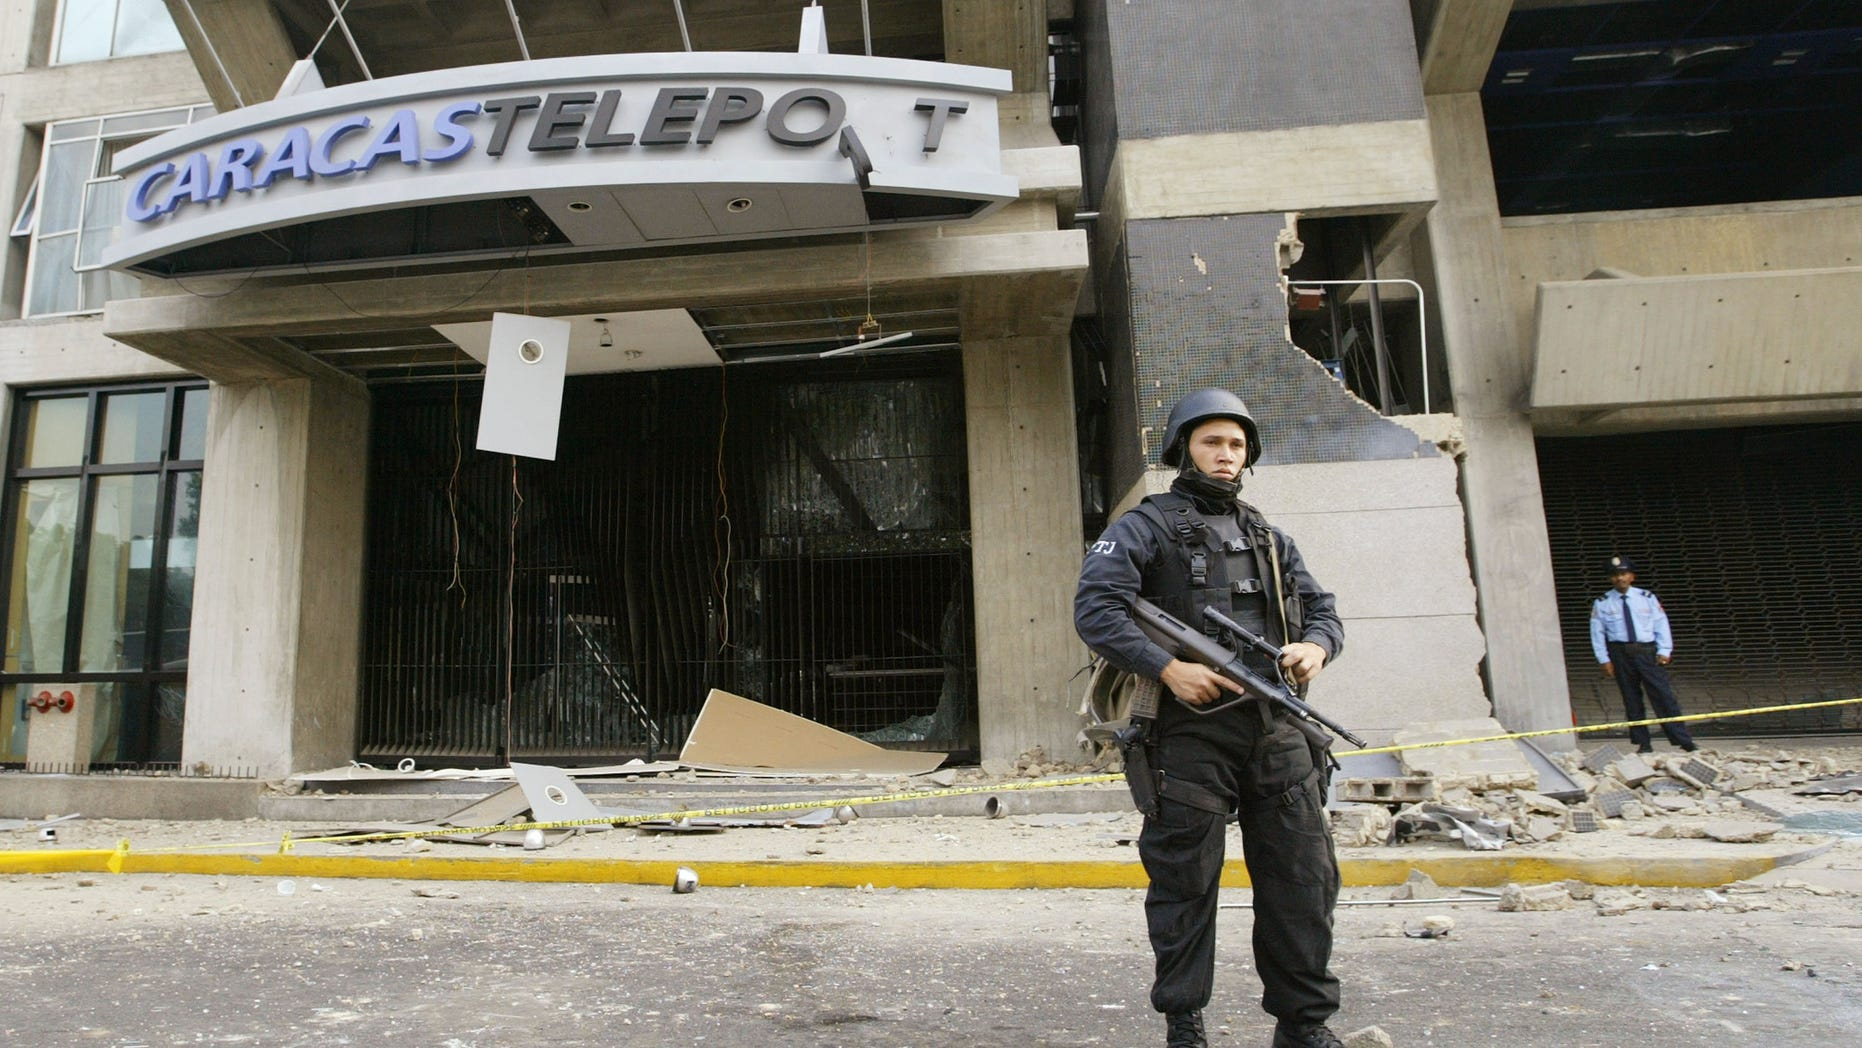 CARACAS, VENEZUELA - APRIL 12:  A police man guards a building where a bomb exploded April 12, 2003 in Caracas, Venezuela. A bomb ripped through a building where government and opposition negotiators had agreed to hold a referendum on President Hugo Chavez. This blast follows several other bomb explosions in the last six weeks and falls on the year anniversary of a brief coup attempt against President Chavez. (Photo by Kimberly White/Getty Images)